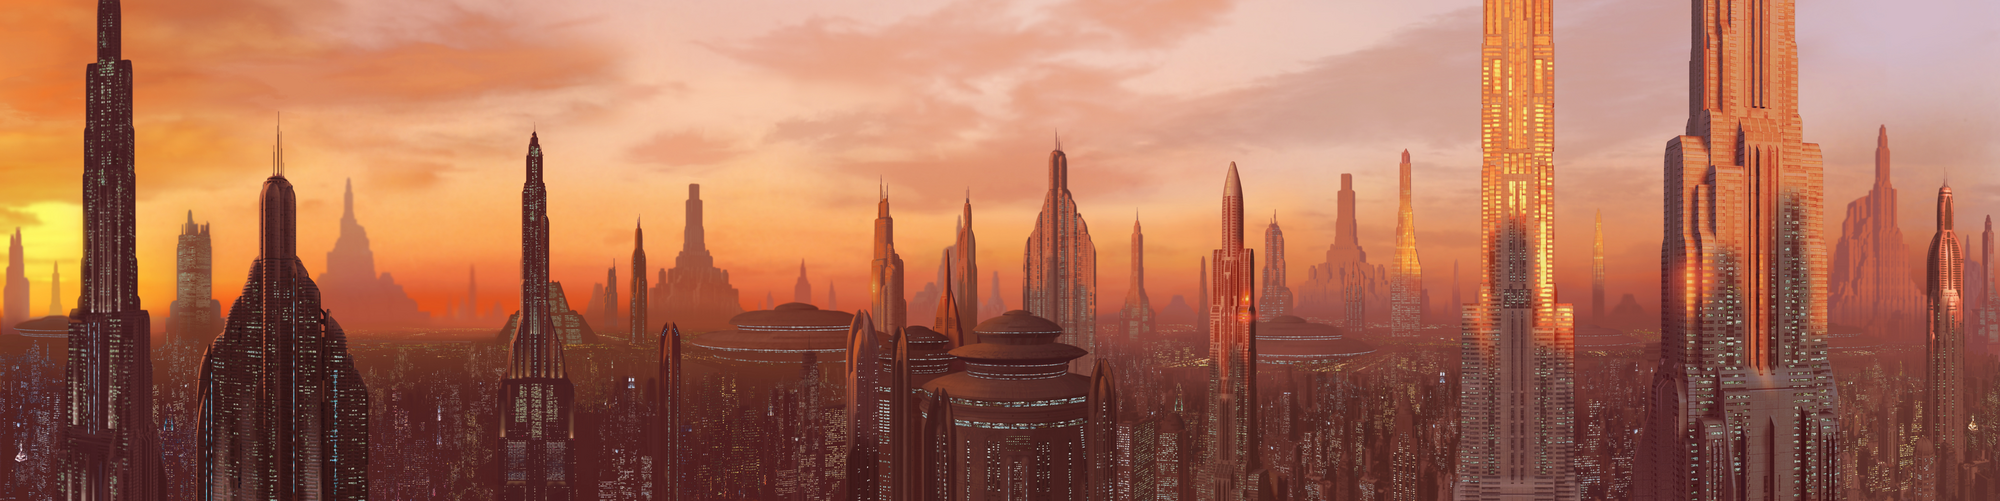 Ecumenopolis | Wookieepedia | FANDOM powered by Wikia